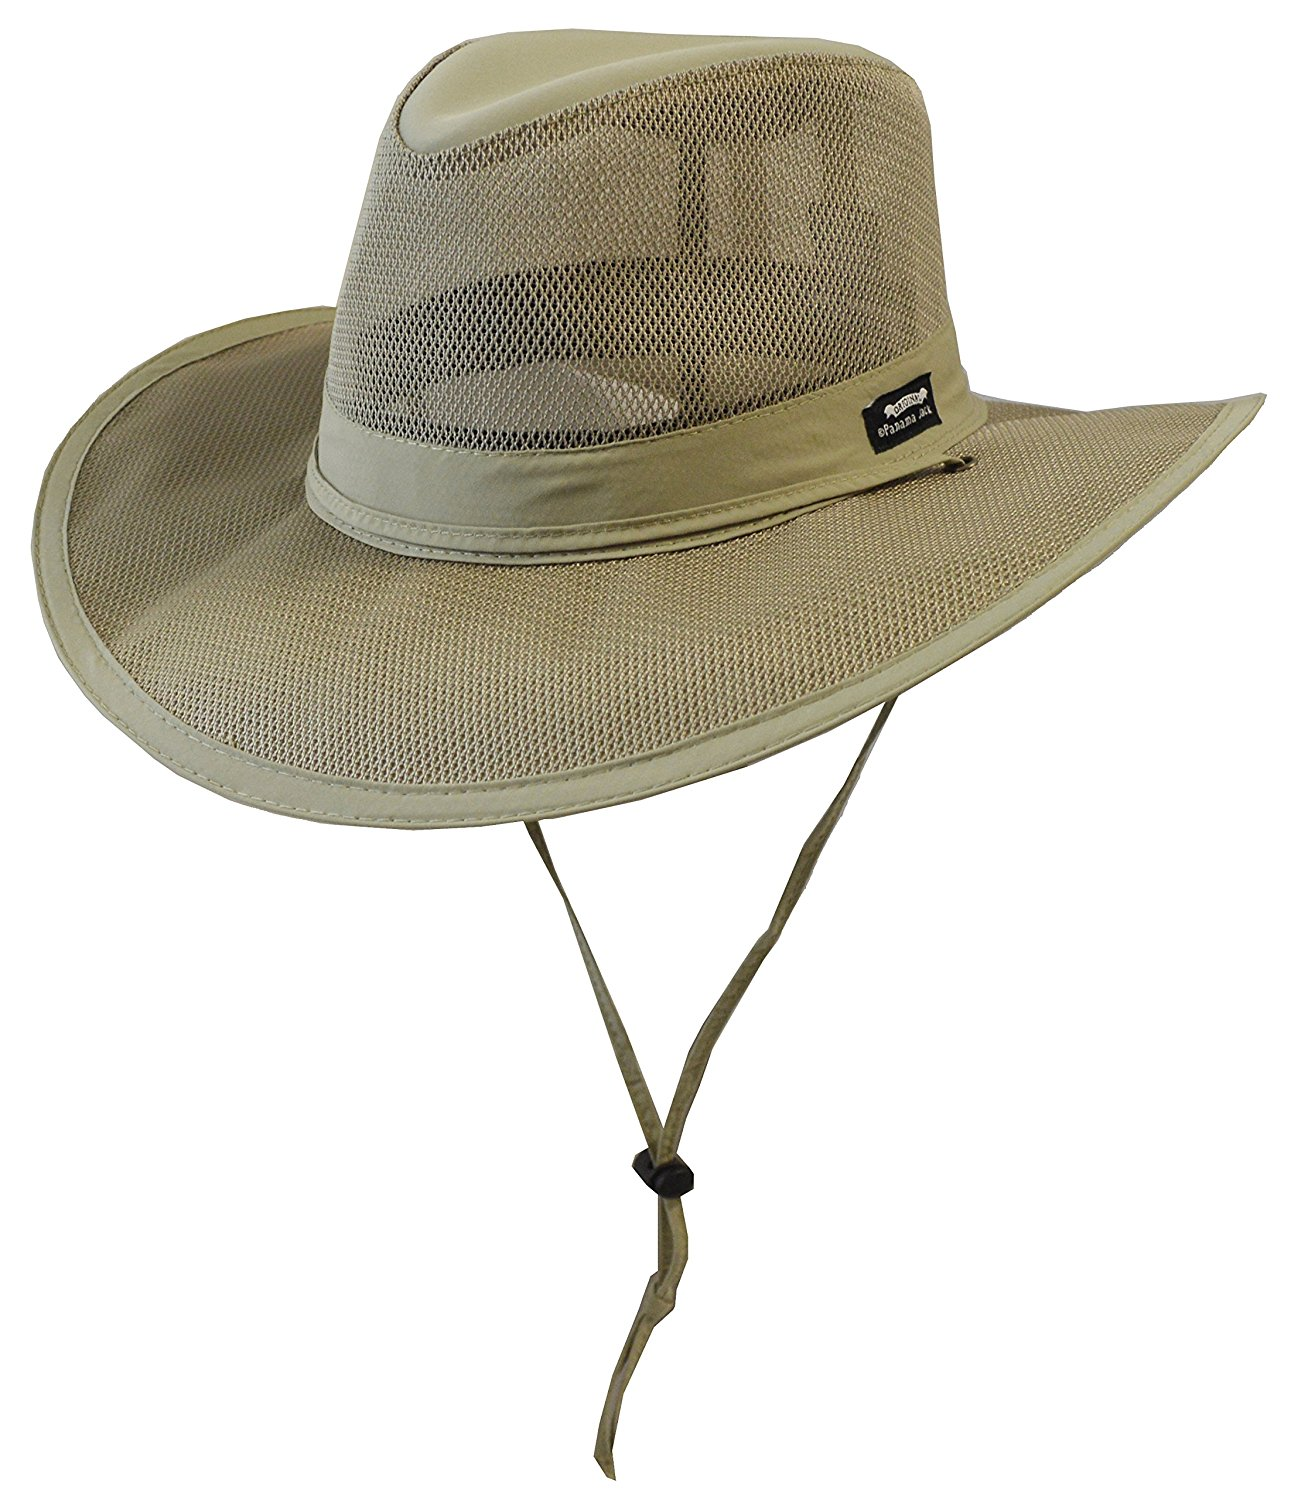 Buy Panama Jack Mens Mesh Safari Hat in Cheap Price on Alibaba.com dbb81a49292a